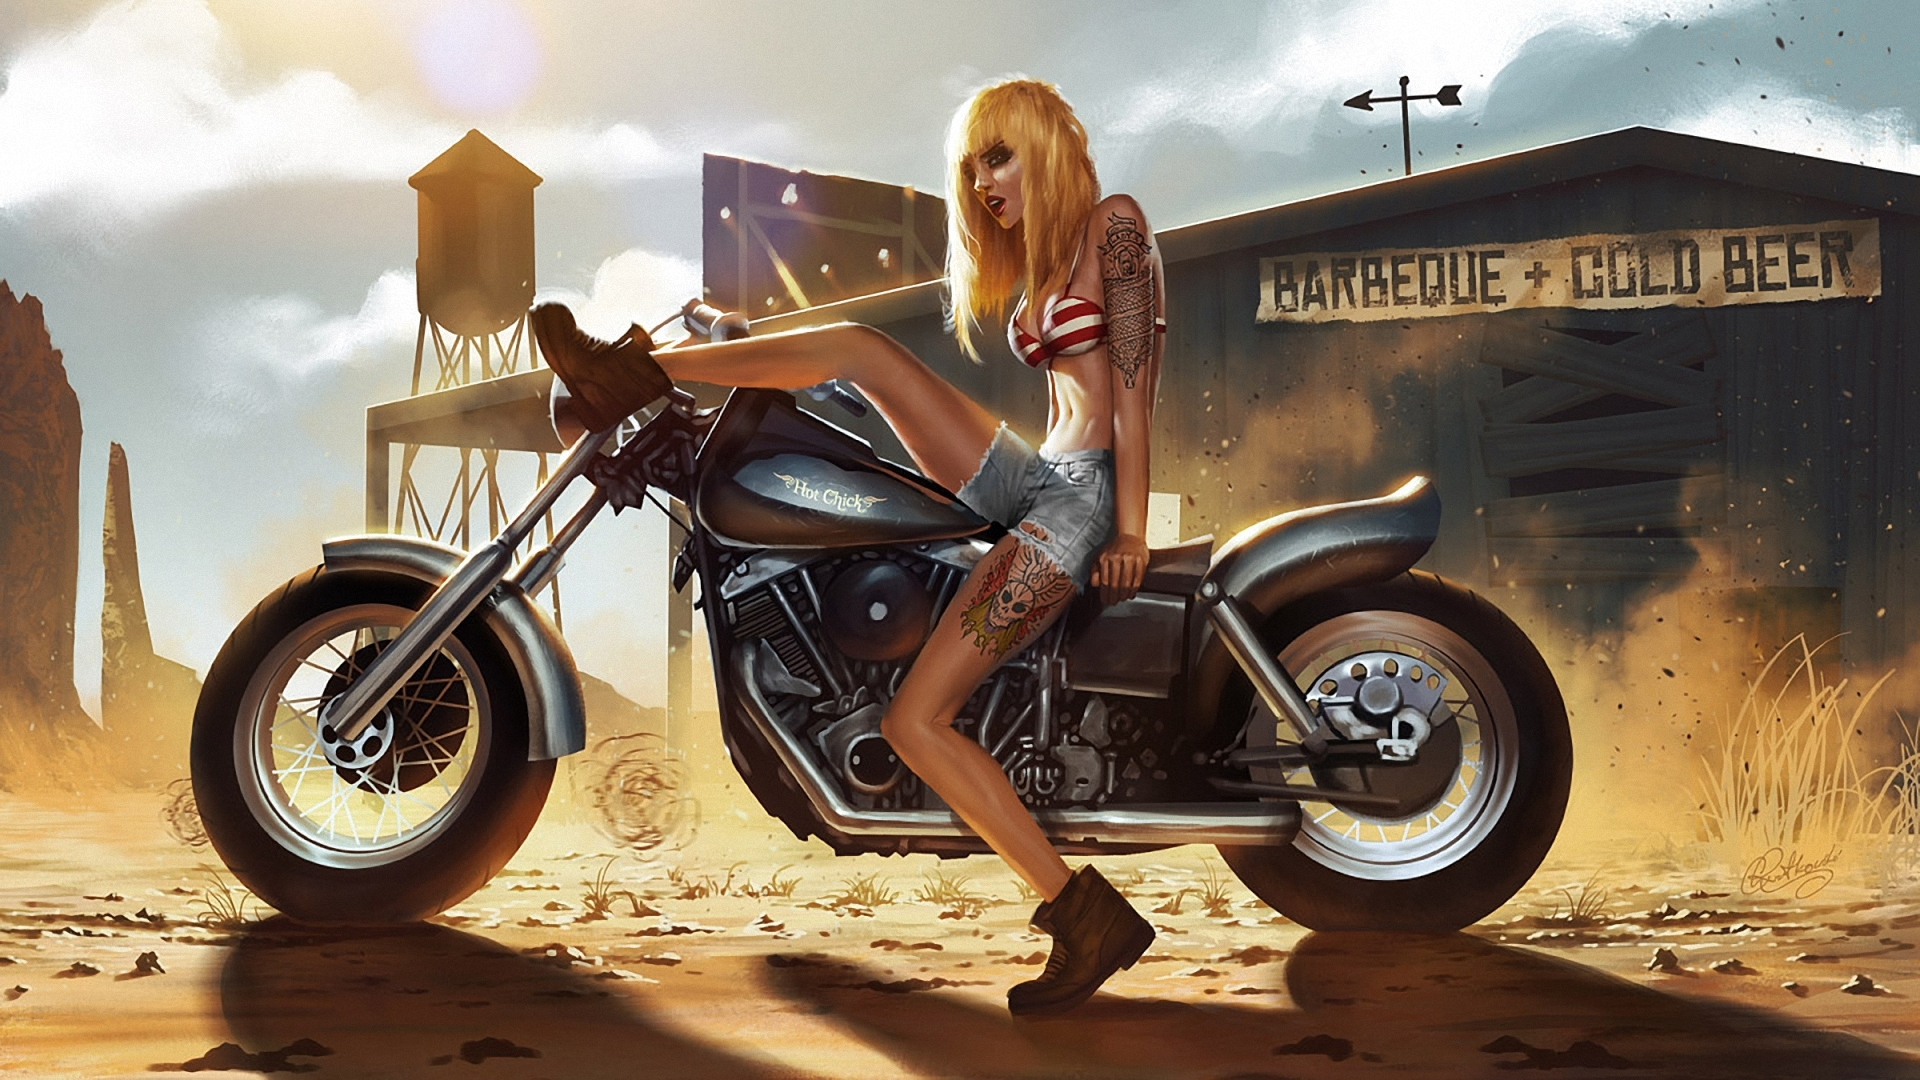 Art Girl Motorcycle Tattoo Tattoos Dust Sand Anger Women Females Sexy